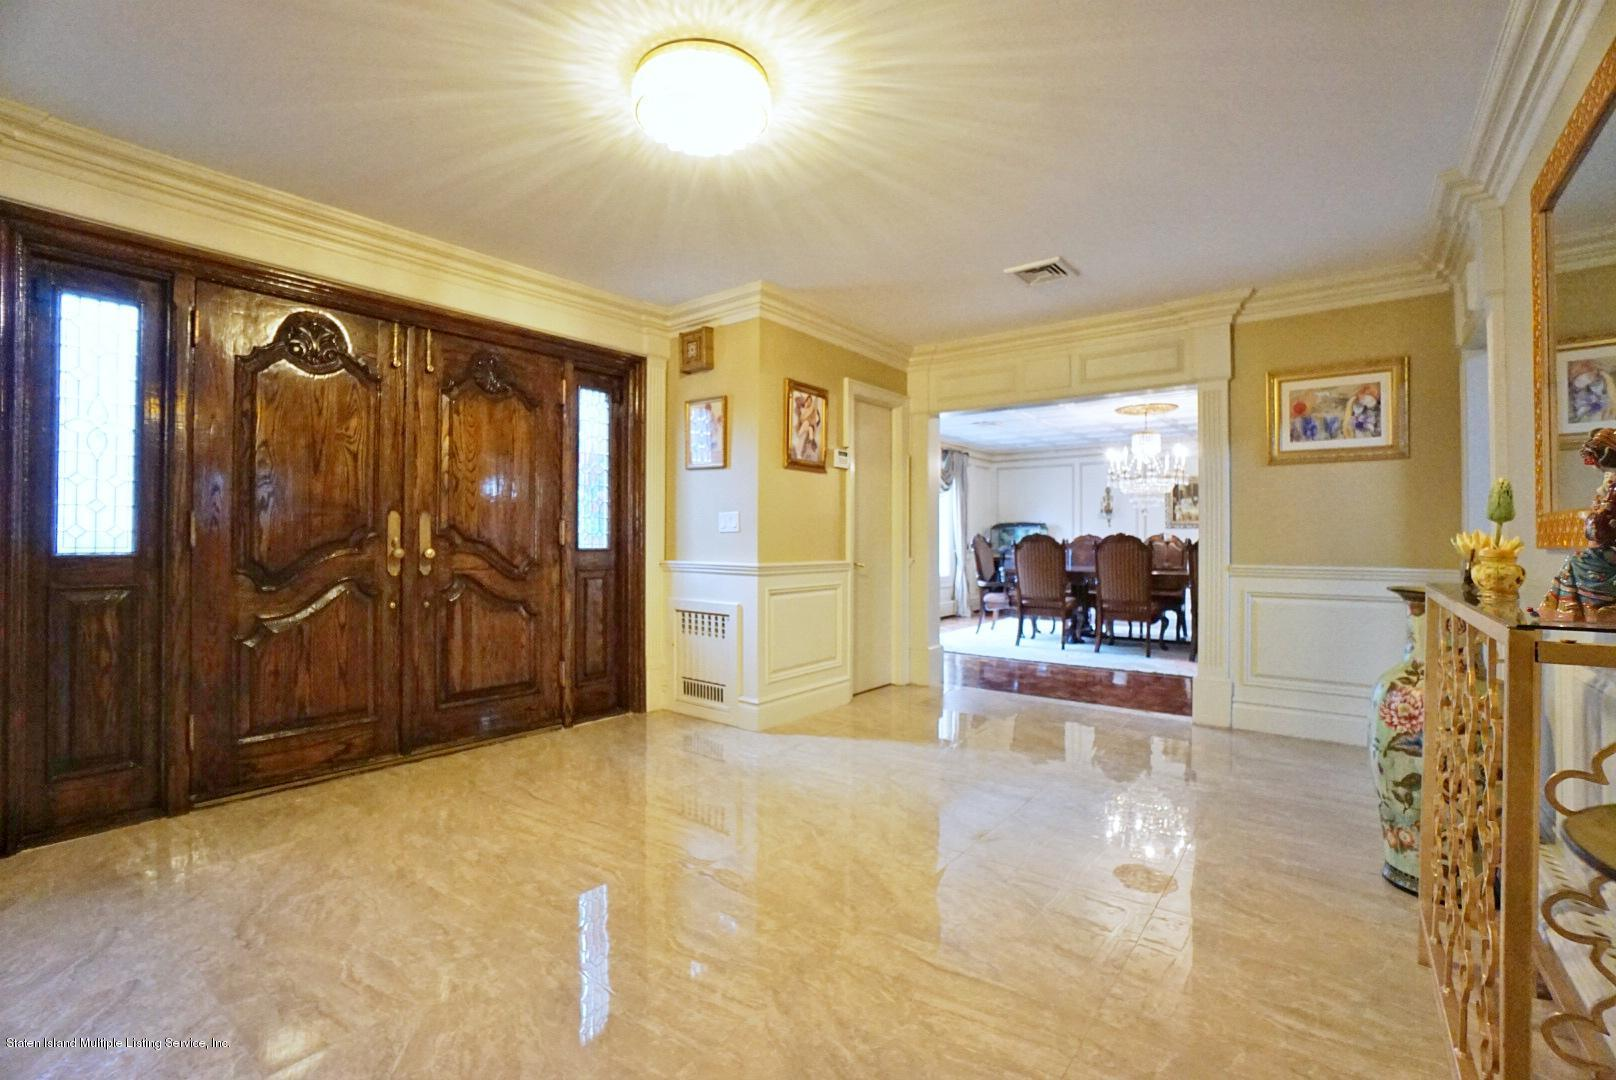 Single Family - Detached 1 Buttonwood Road   Staten Island, NY 10304, MLS-1135318-6